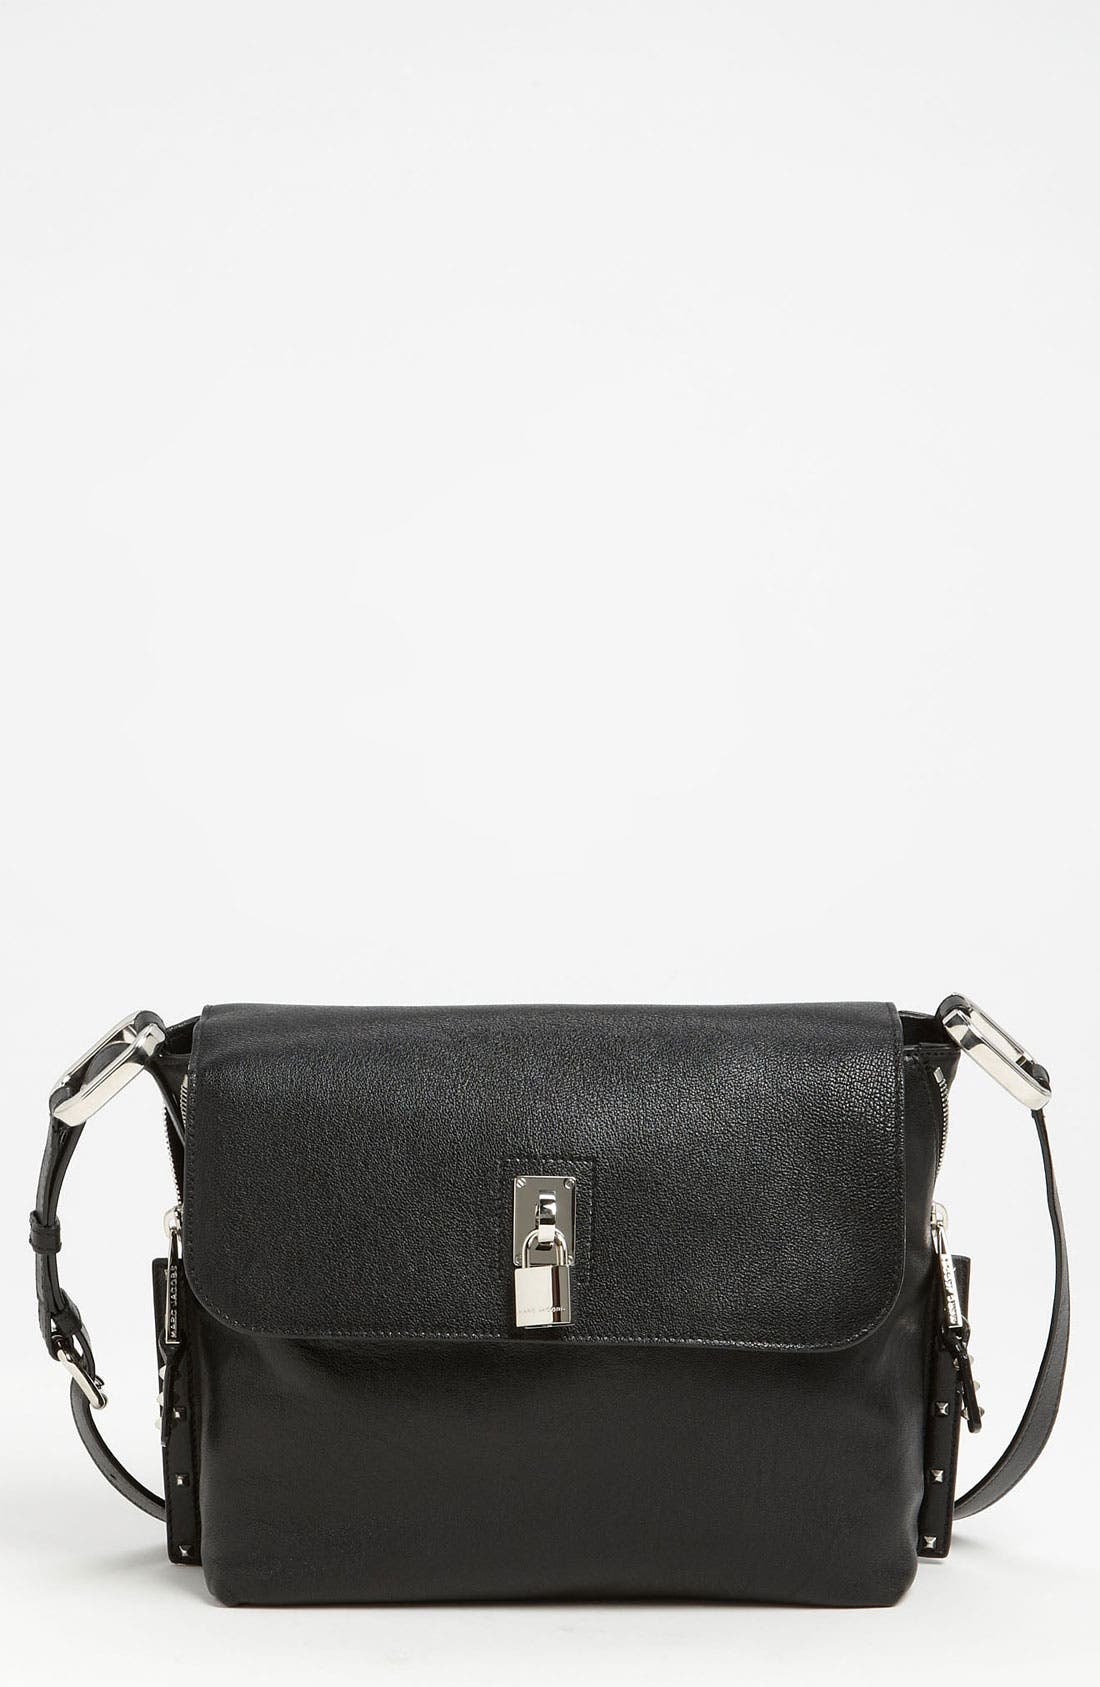 Alternate Image 1 Selected - MARC JACOBS 'Paradise Baxter' Lambskin Leather Crossbody Bag